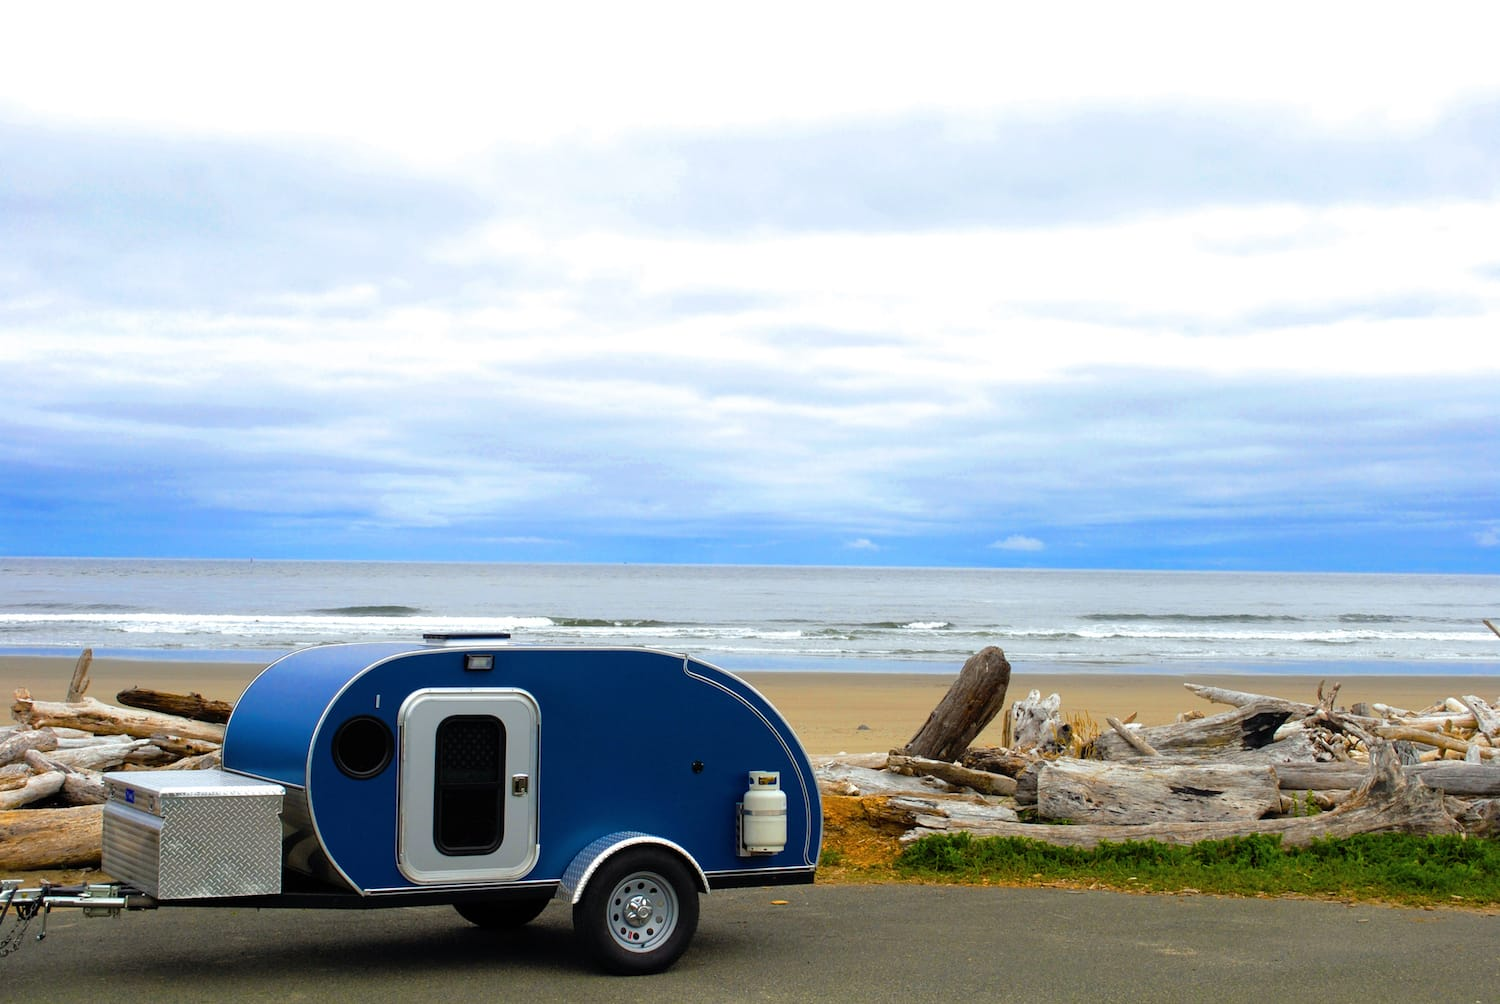 A blue teardrop camping trailer on the roadside along the Oregon Coast